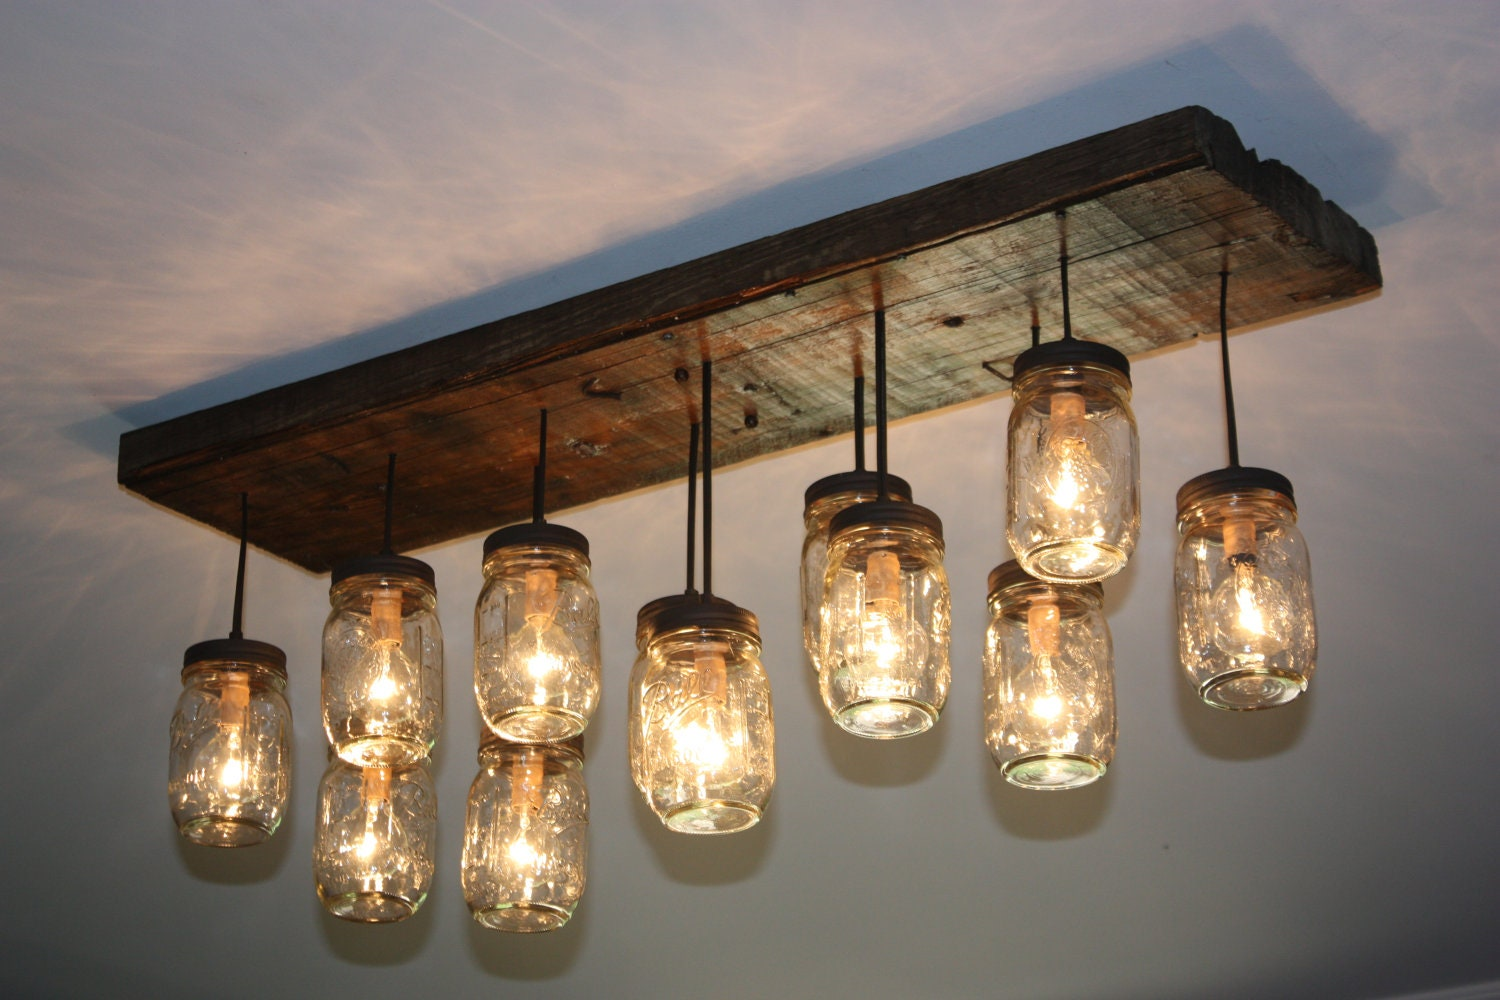 The coming home custom mason jar chandelier - Light fixtures chandeliers ...